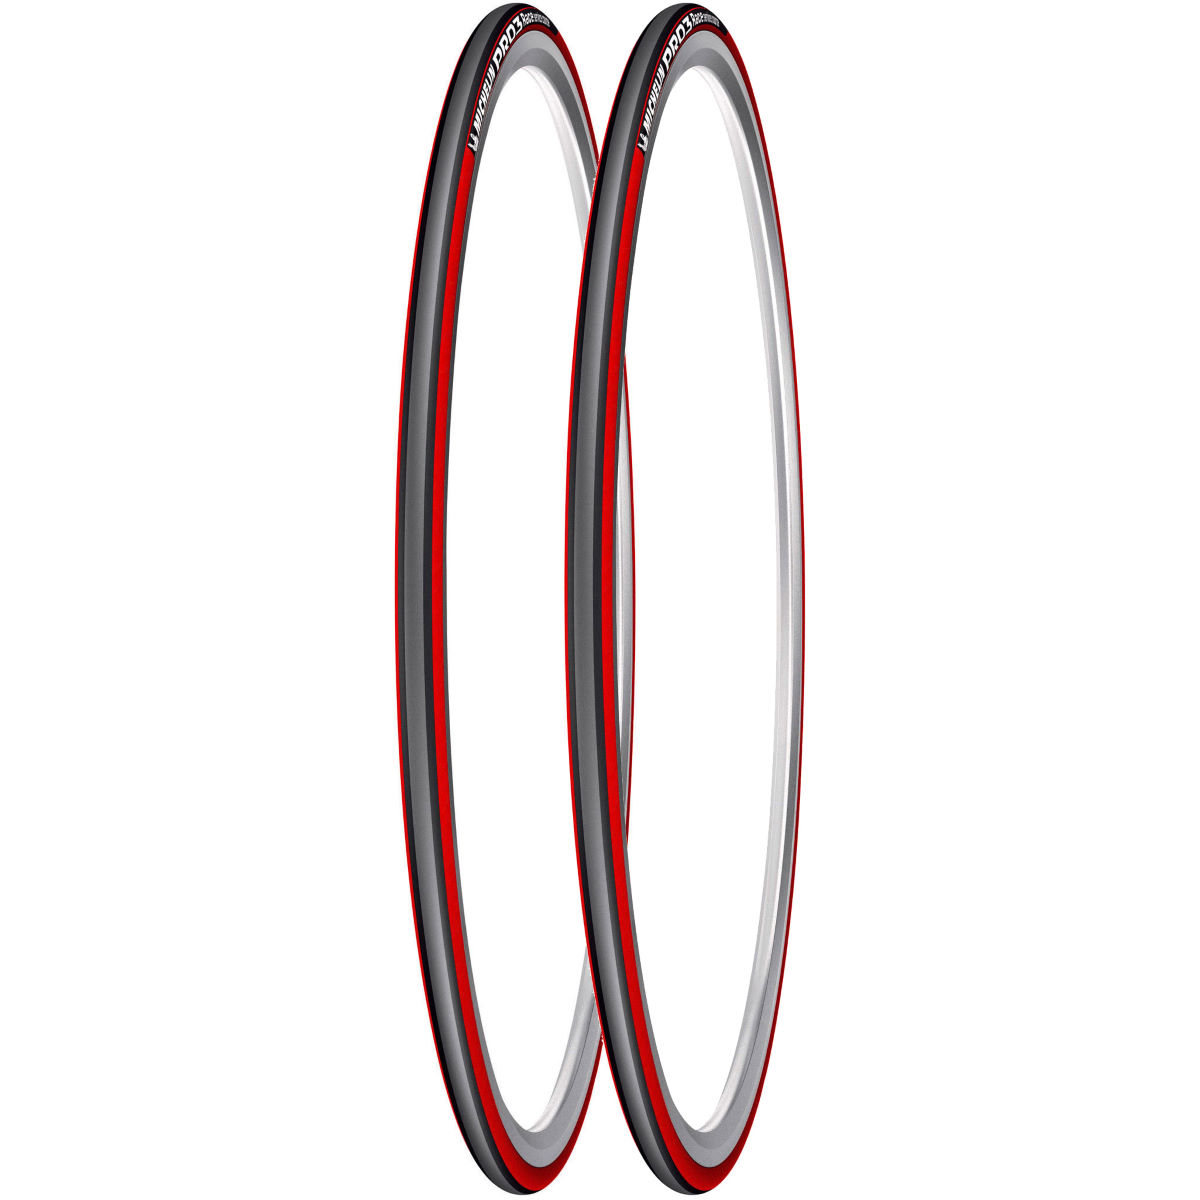 Michelin Pro 3 Race Road Tyres Red/Grey 23c - Pair   Tyres